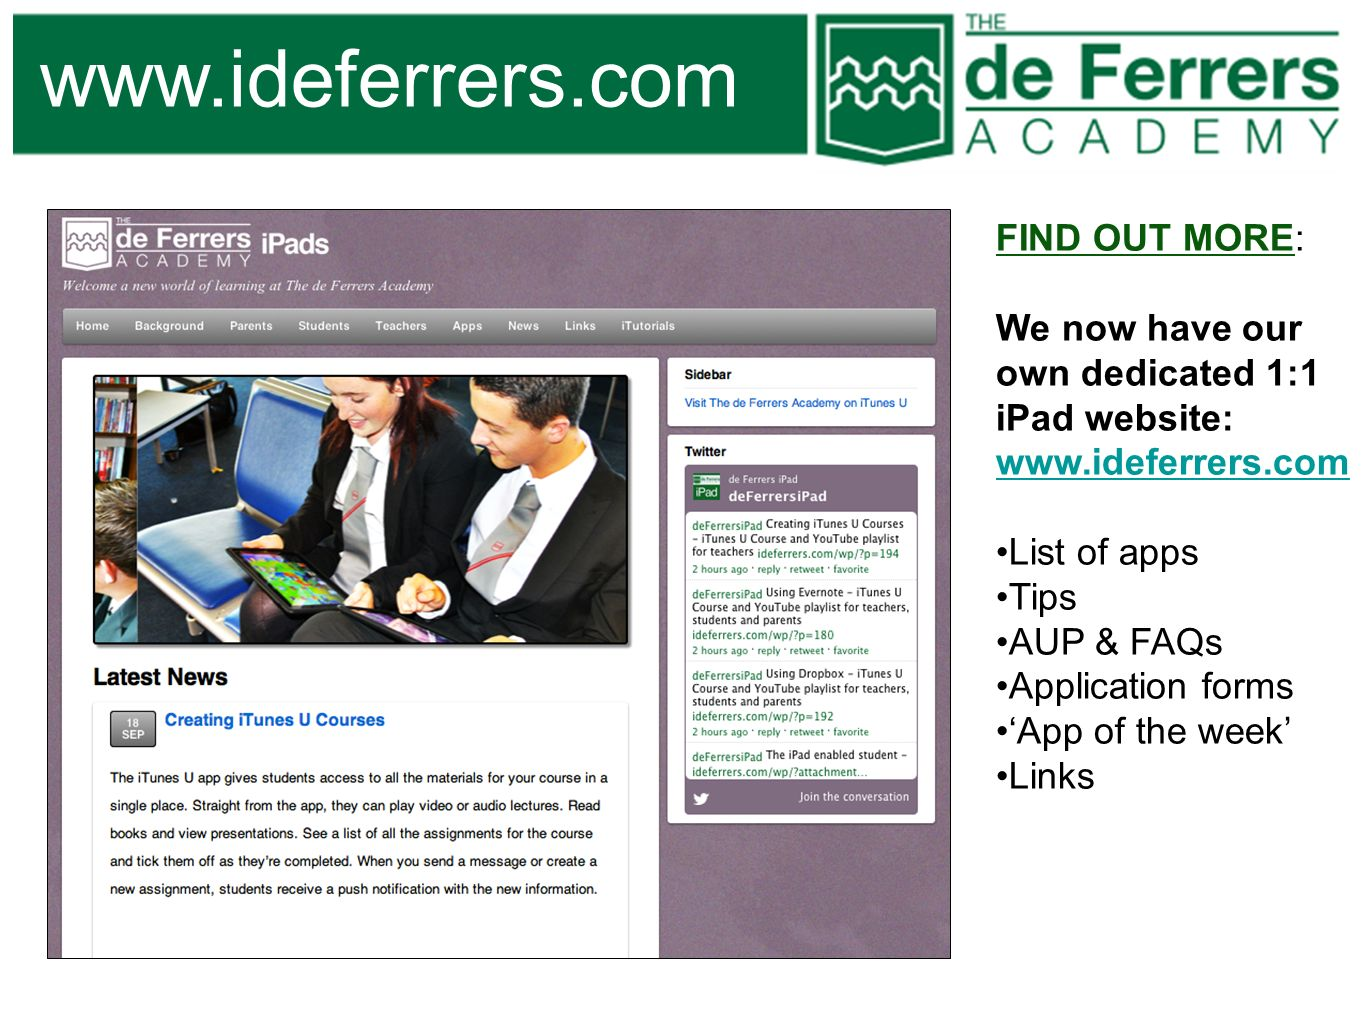 www.ideferrers.com FIND OUT MORE: